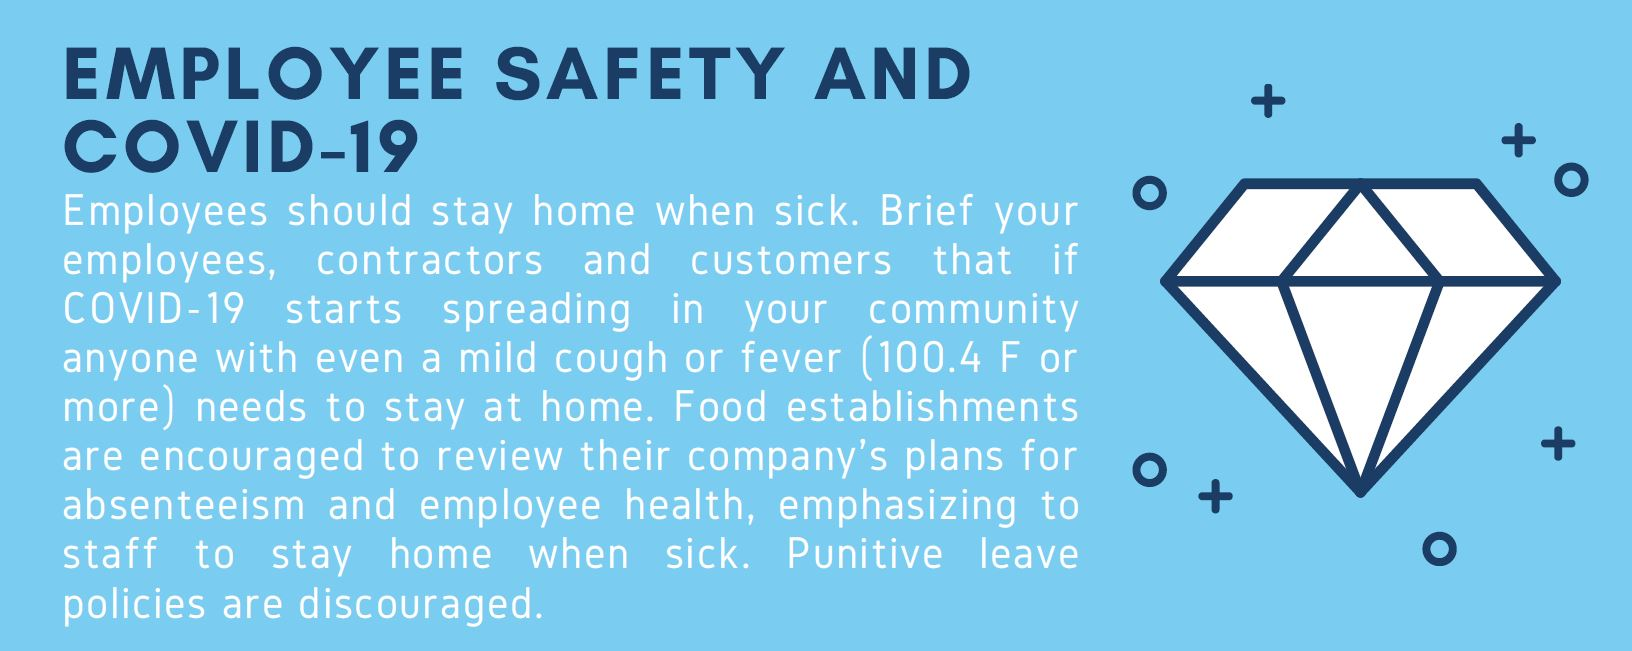 "Diamond icon, ""Employees should stay home when sick. Brief your employees that if COVID-19 starts spreading in your ocmmunity, anyone with even a mild cough or fever needs to stay at home. Food establishments are encouraged to review their company's plans for absenteeism, emphasizing to staff to stay home when sick."" (abbrev.)"